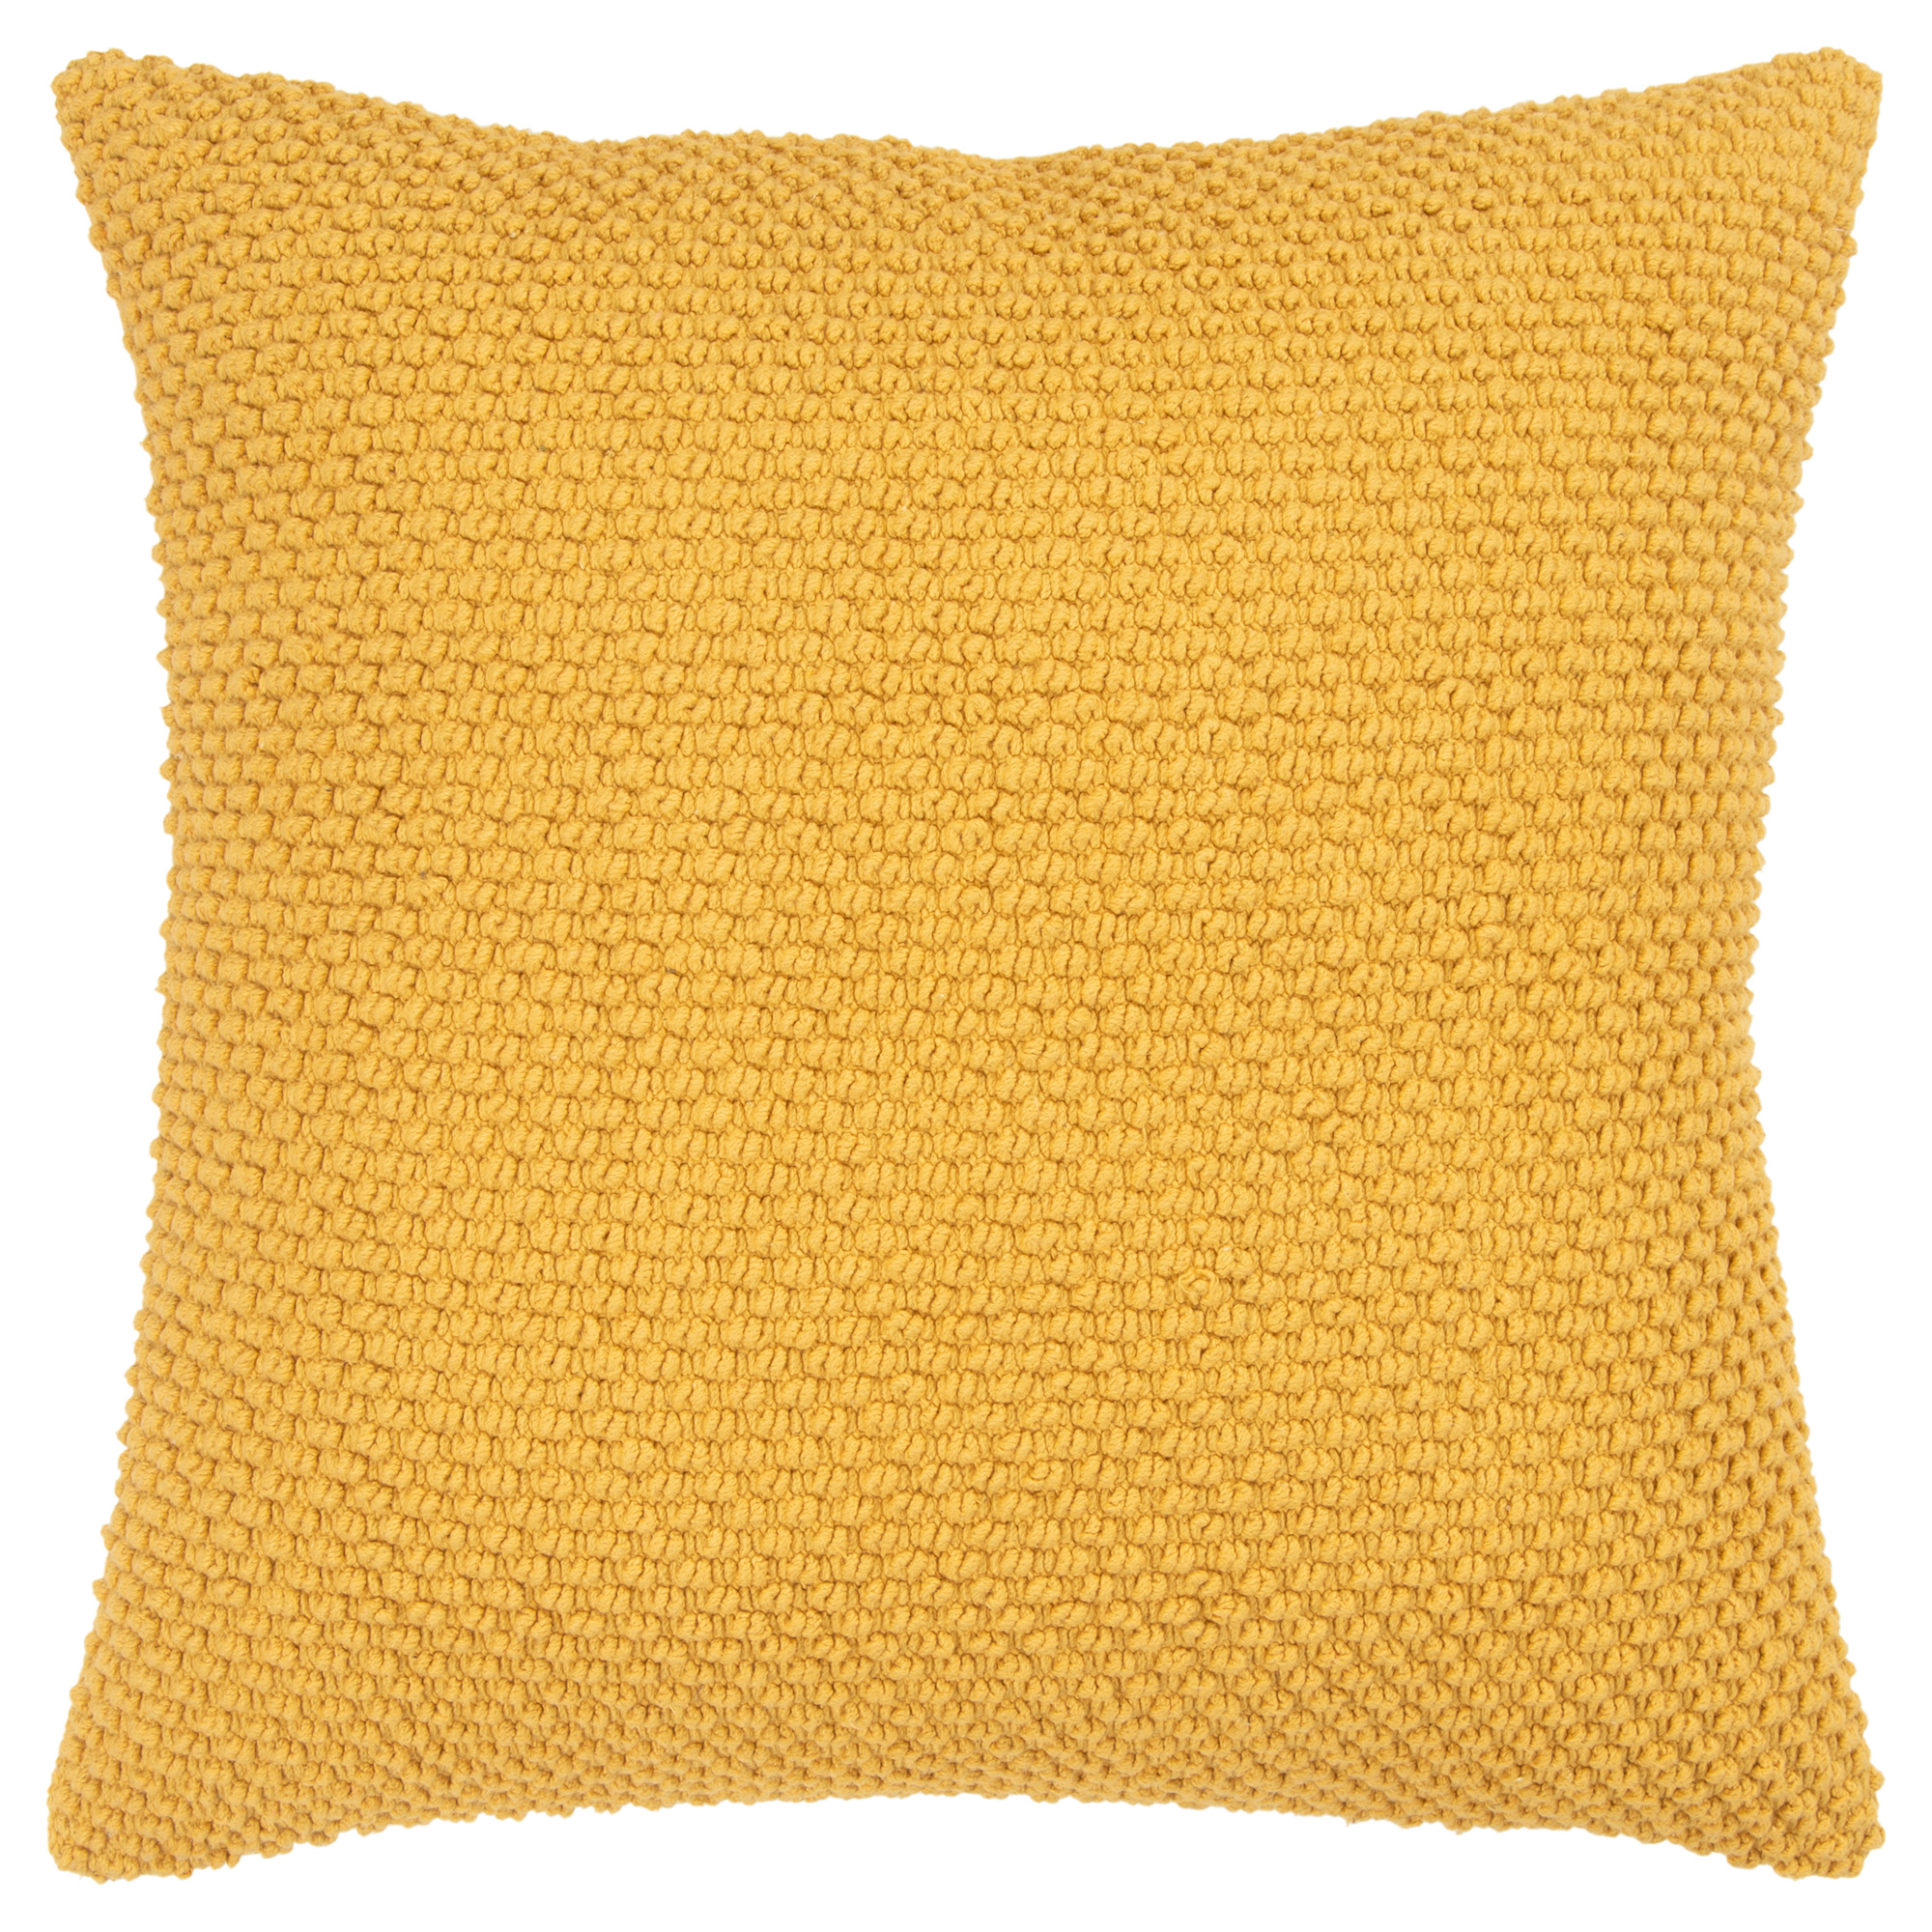 Rizzy Home | Aztec Yellow Textured Down Pillow